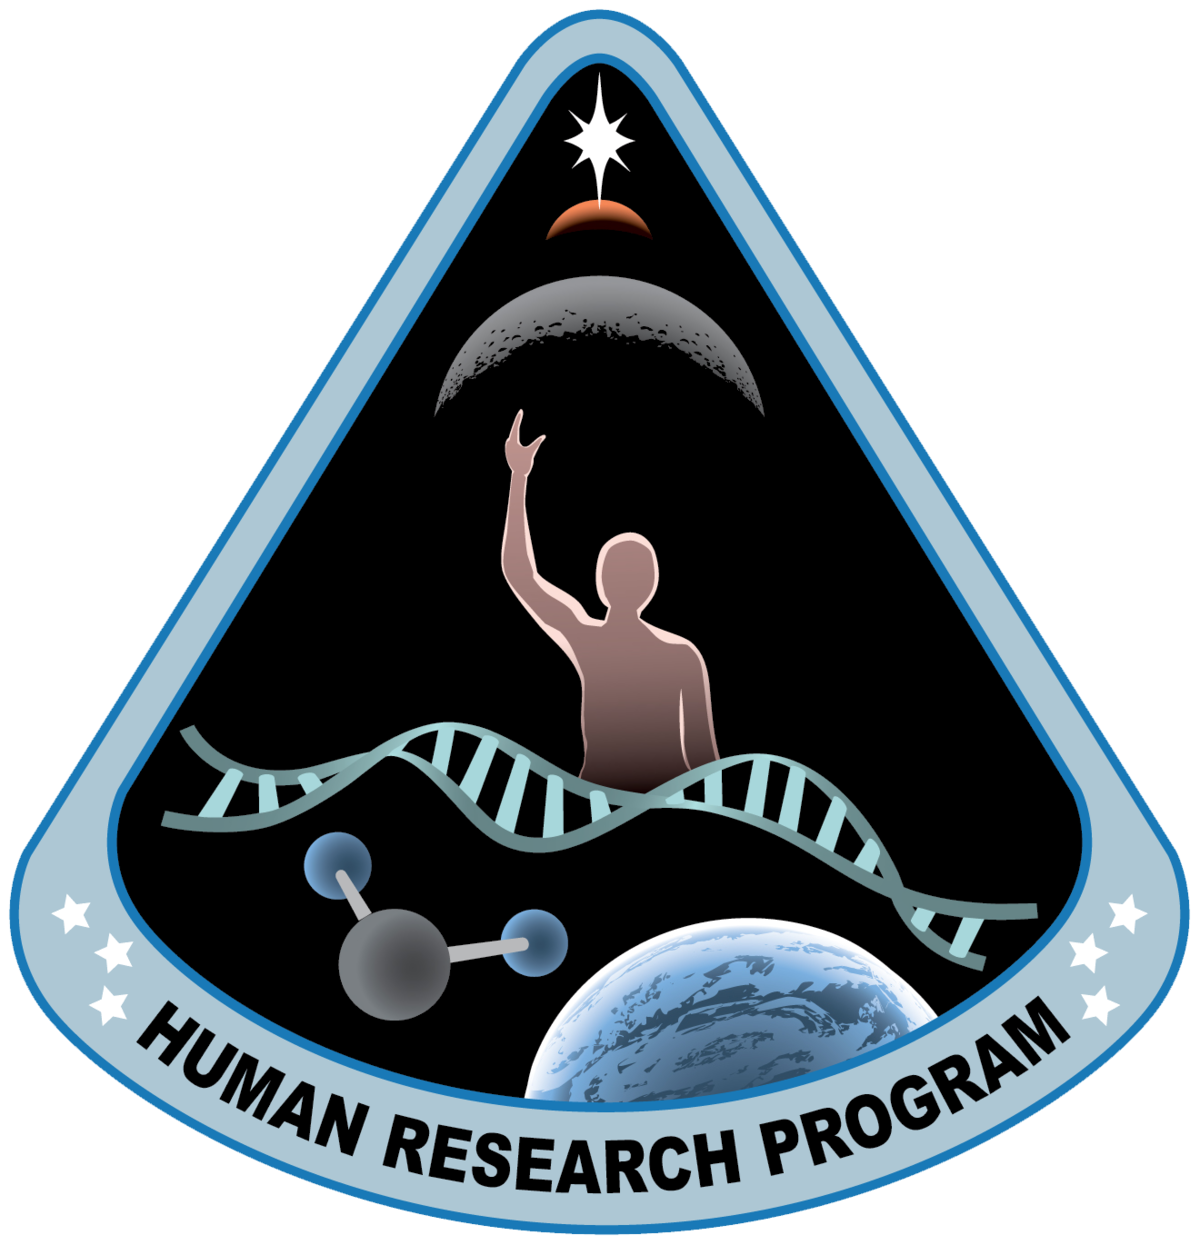 rodent research logo nasa - photo #22